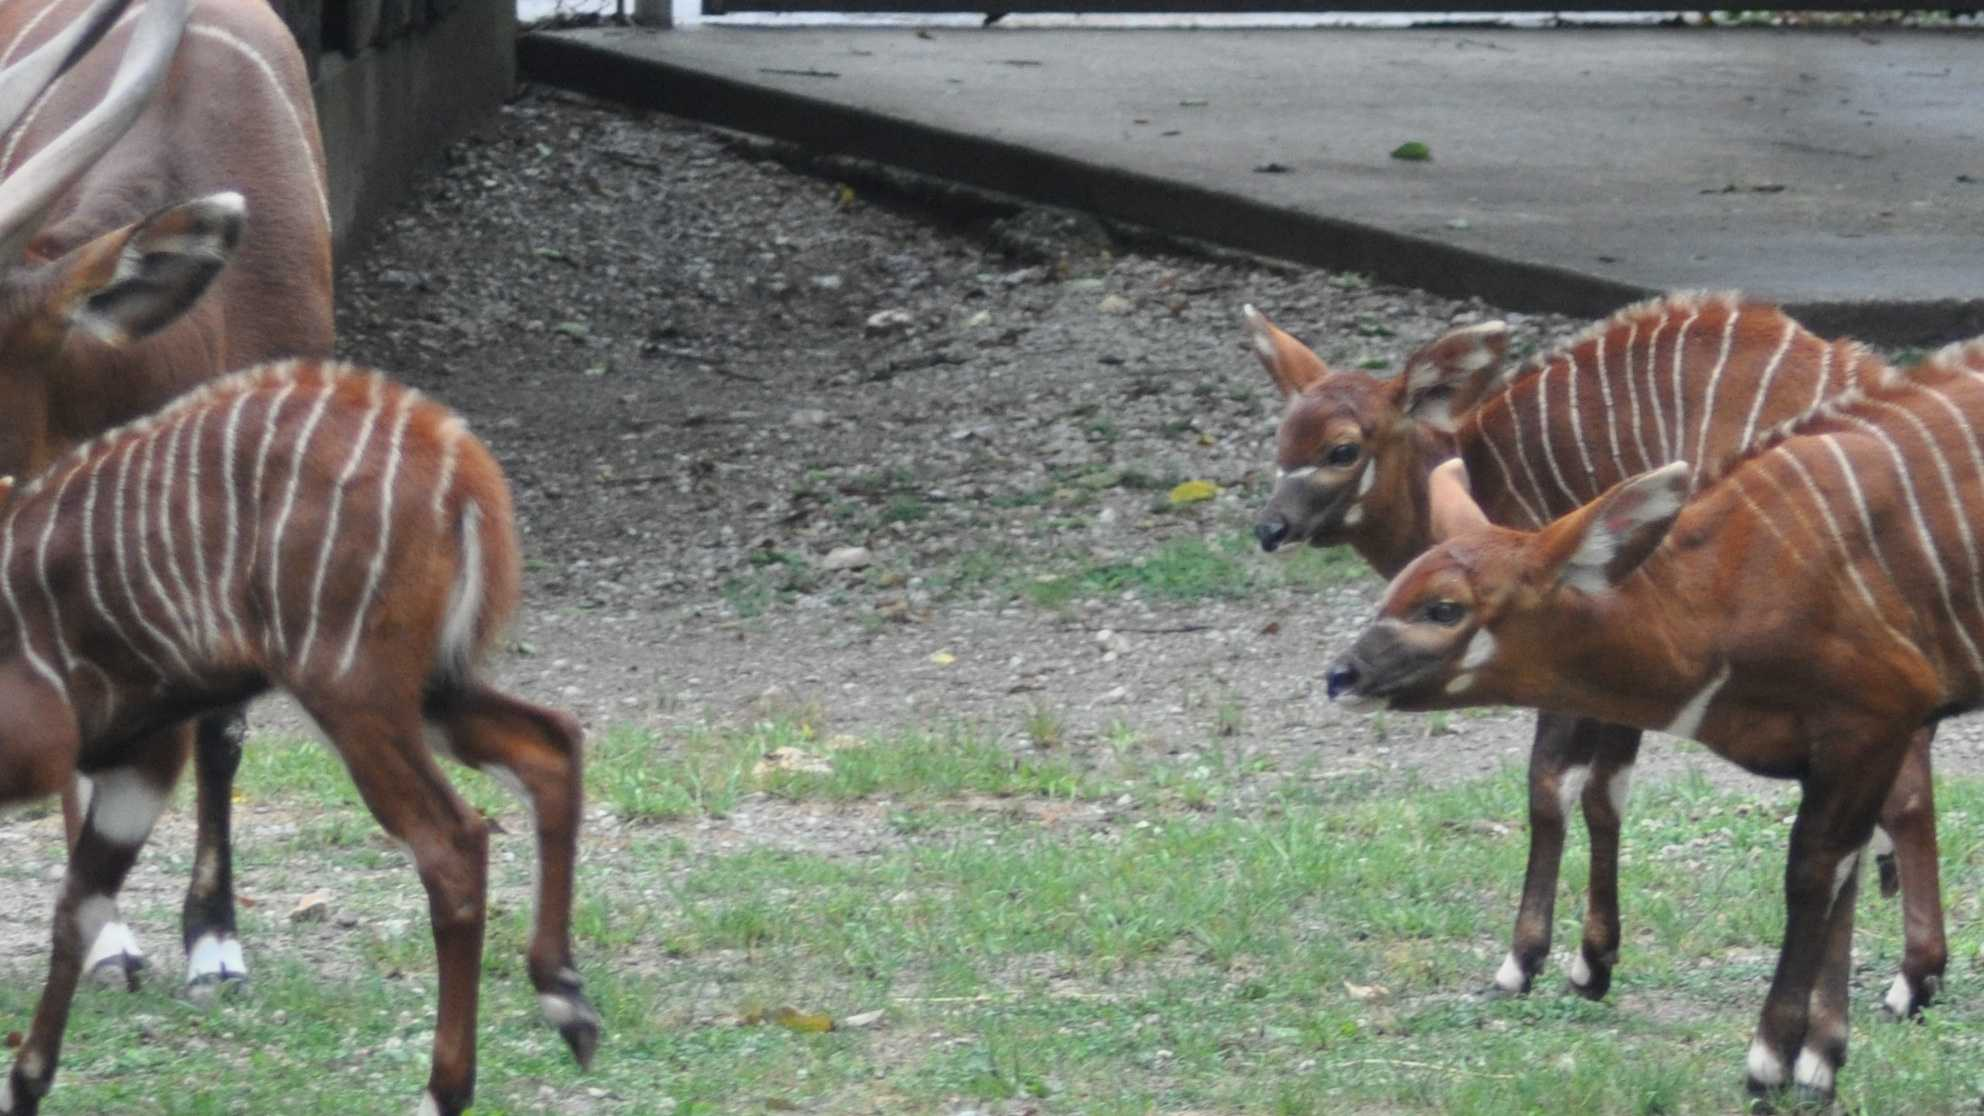 The Louisville Zoo announced the addition of three bongo calves to its family Wednesday.